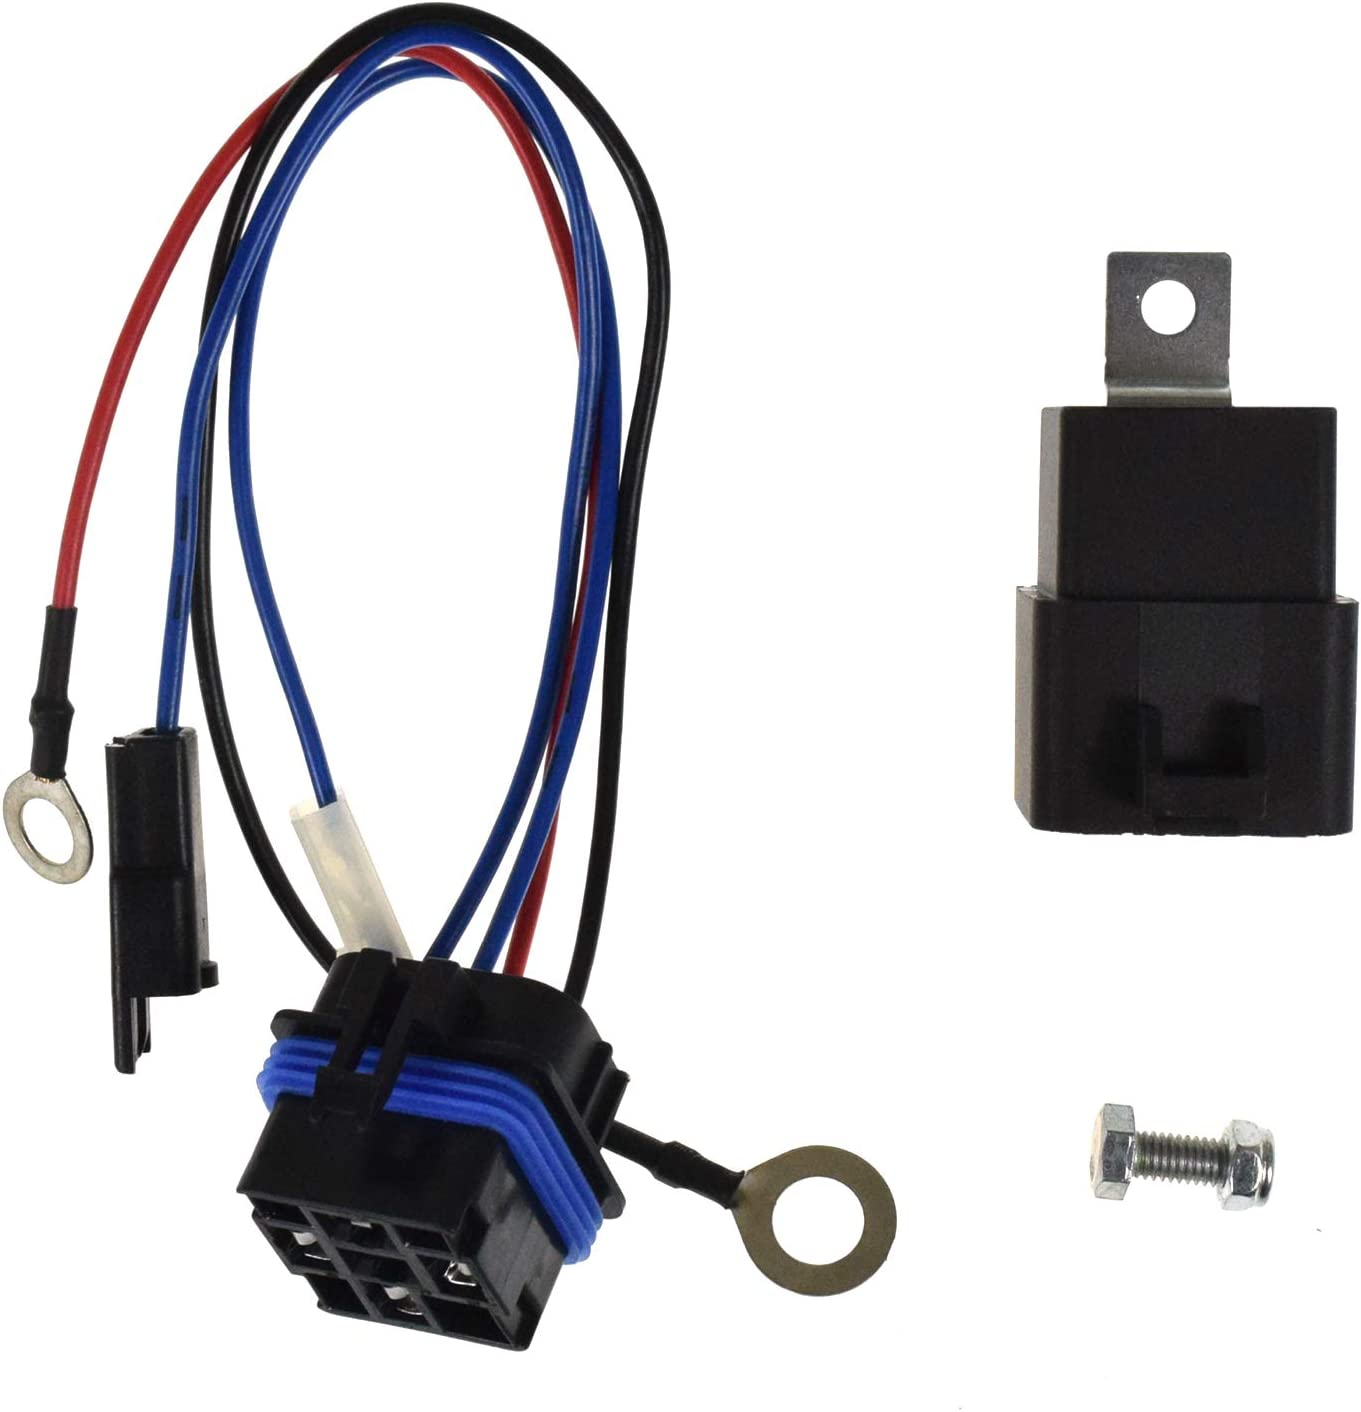 GWNOWZZET Starter Relay Kit AM107421 for160 165 170 175 180 Lawn Tractors